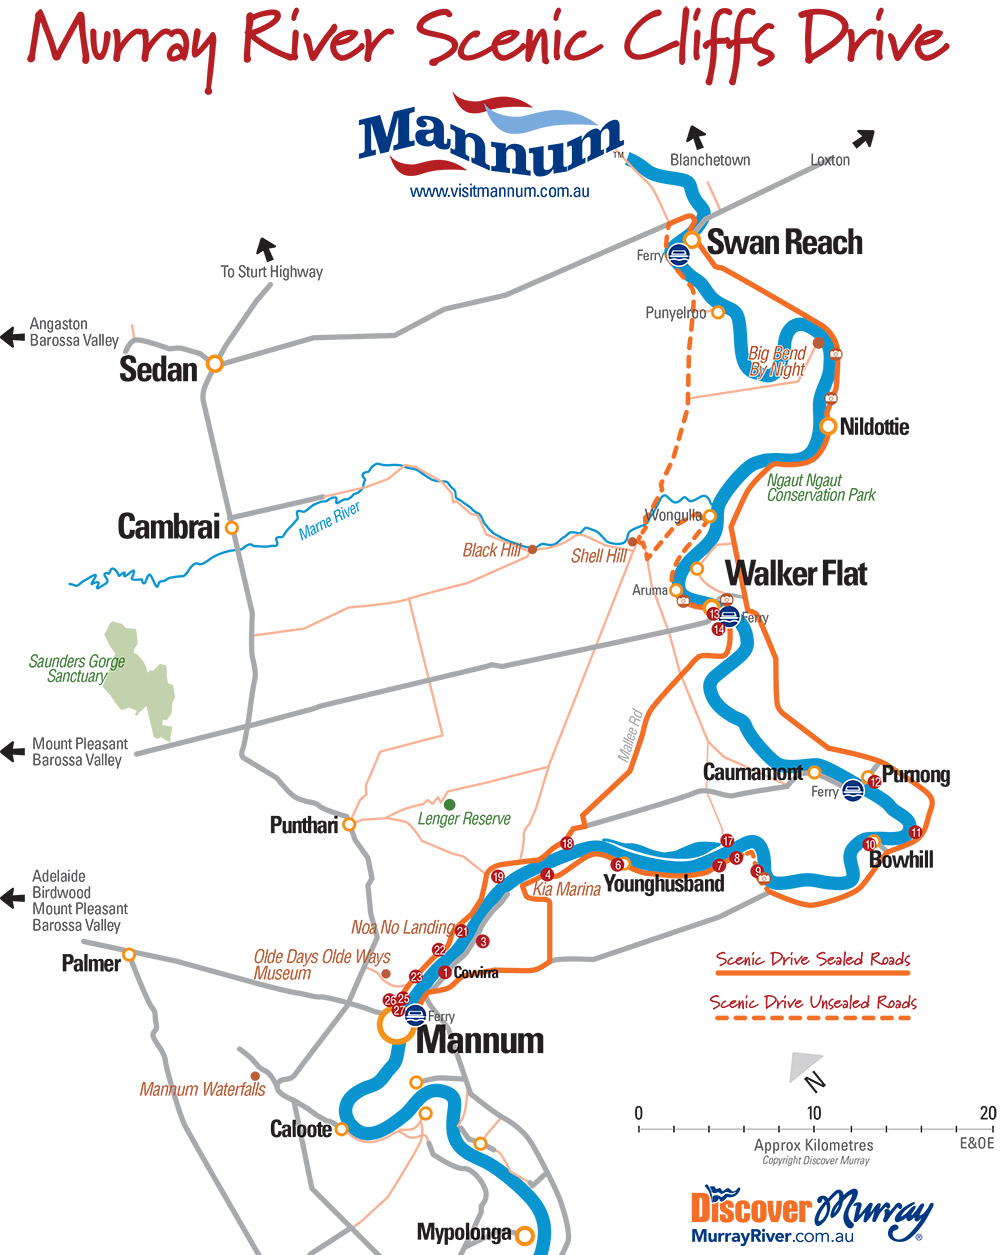 Murray River Scenic Cliffs Drive map